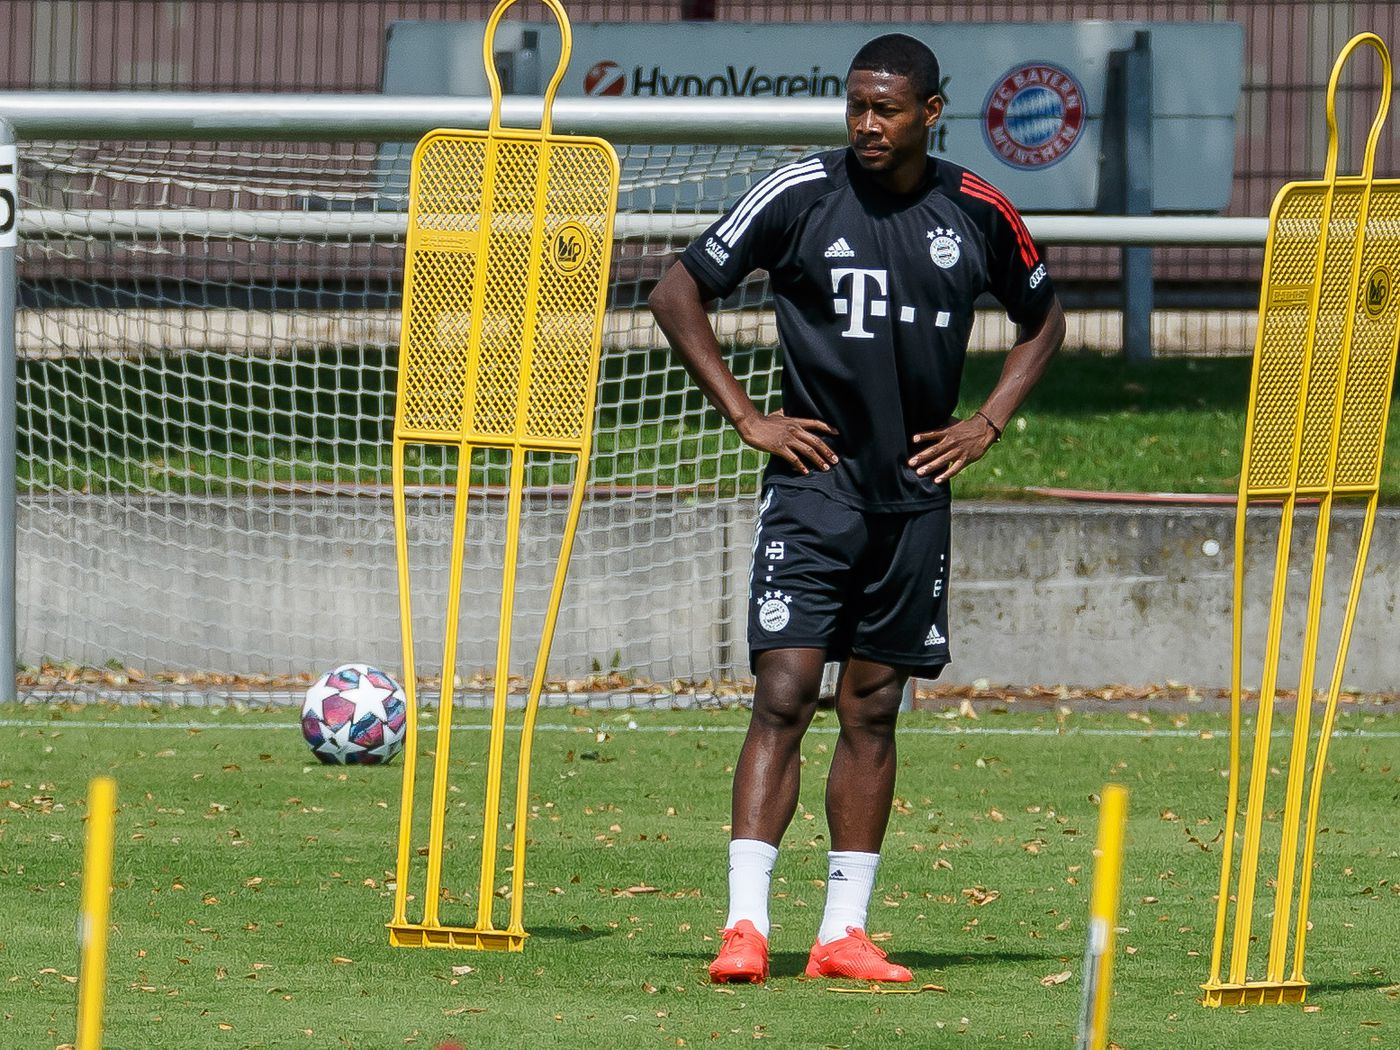 Barcelona's pursuit of David Alaba takes a hit - Barca Blaugranes